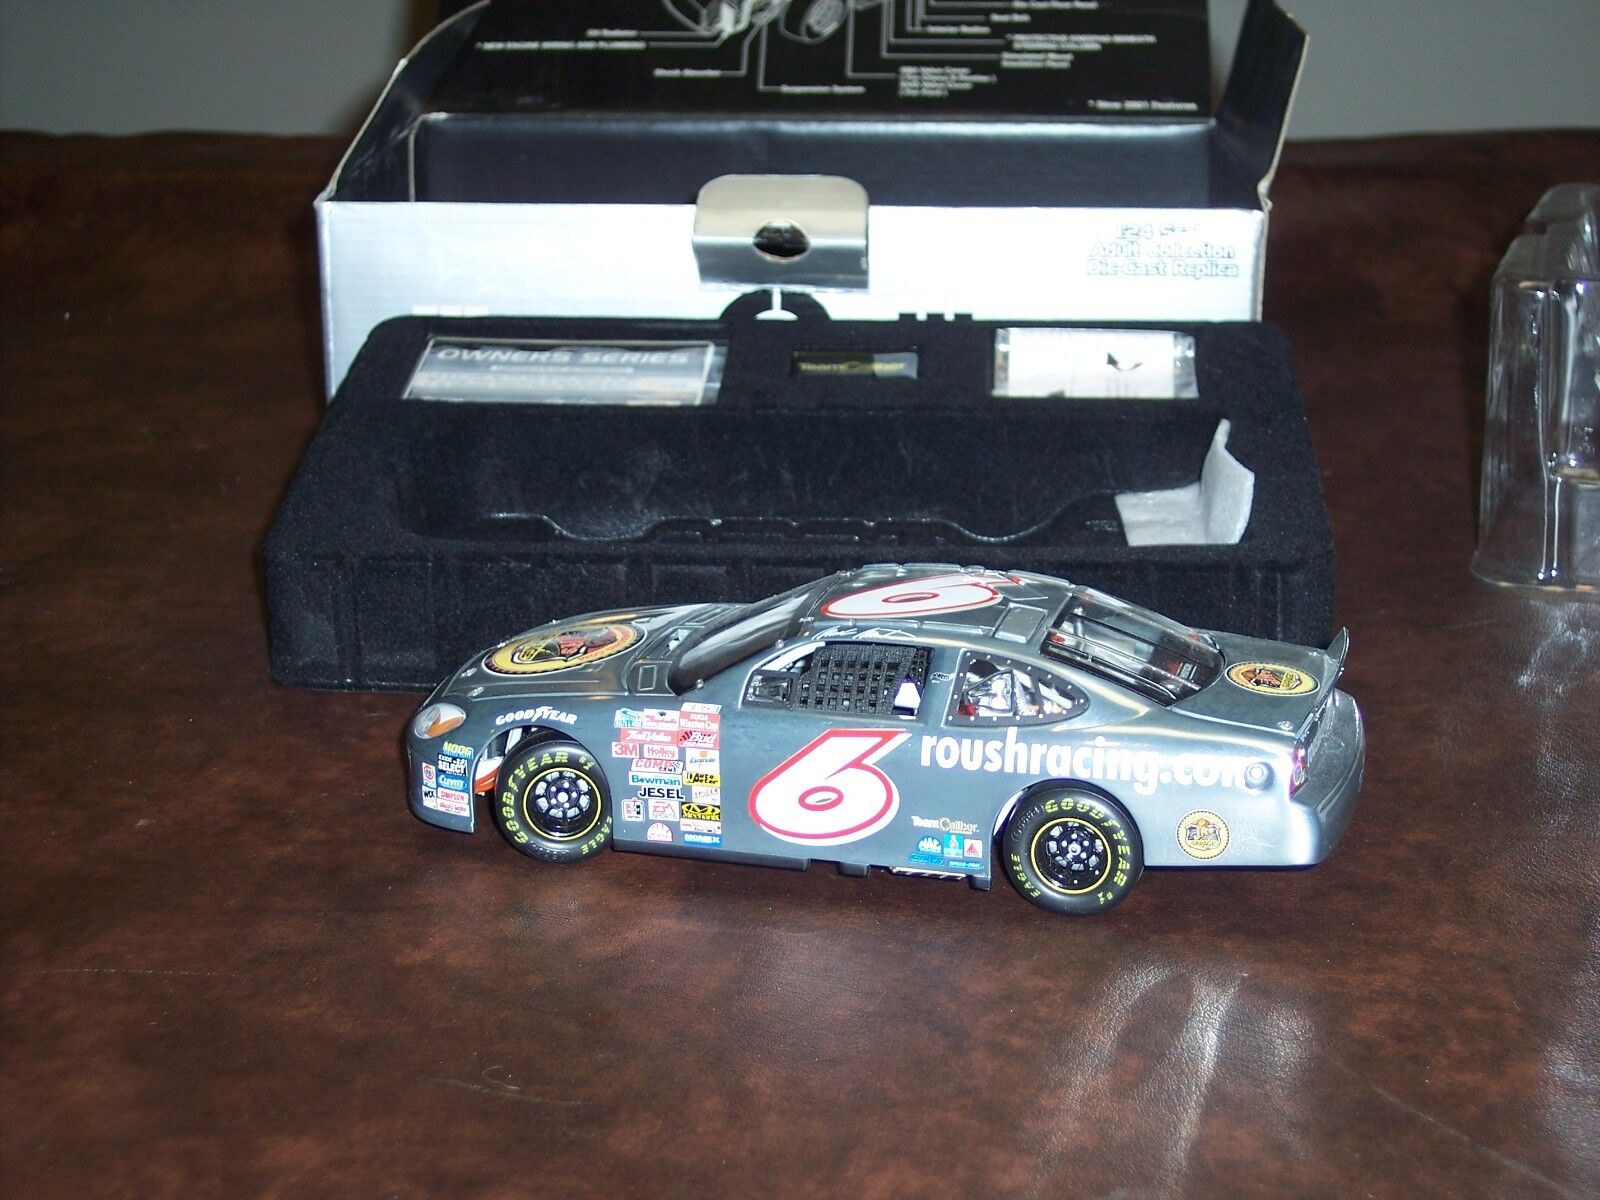 Team Caliber-Mark Martin -  6 - Jr 's  Garage - 2001 -1 24 Scale-ZAMAC-NEUF - (hard to find)  vente pas cher